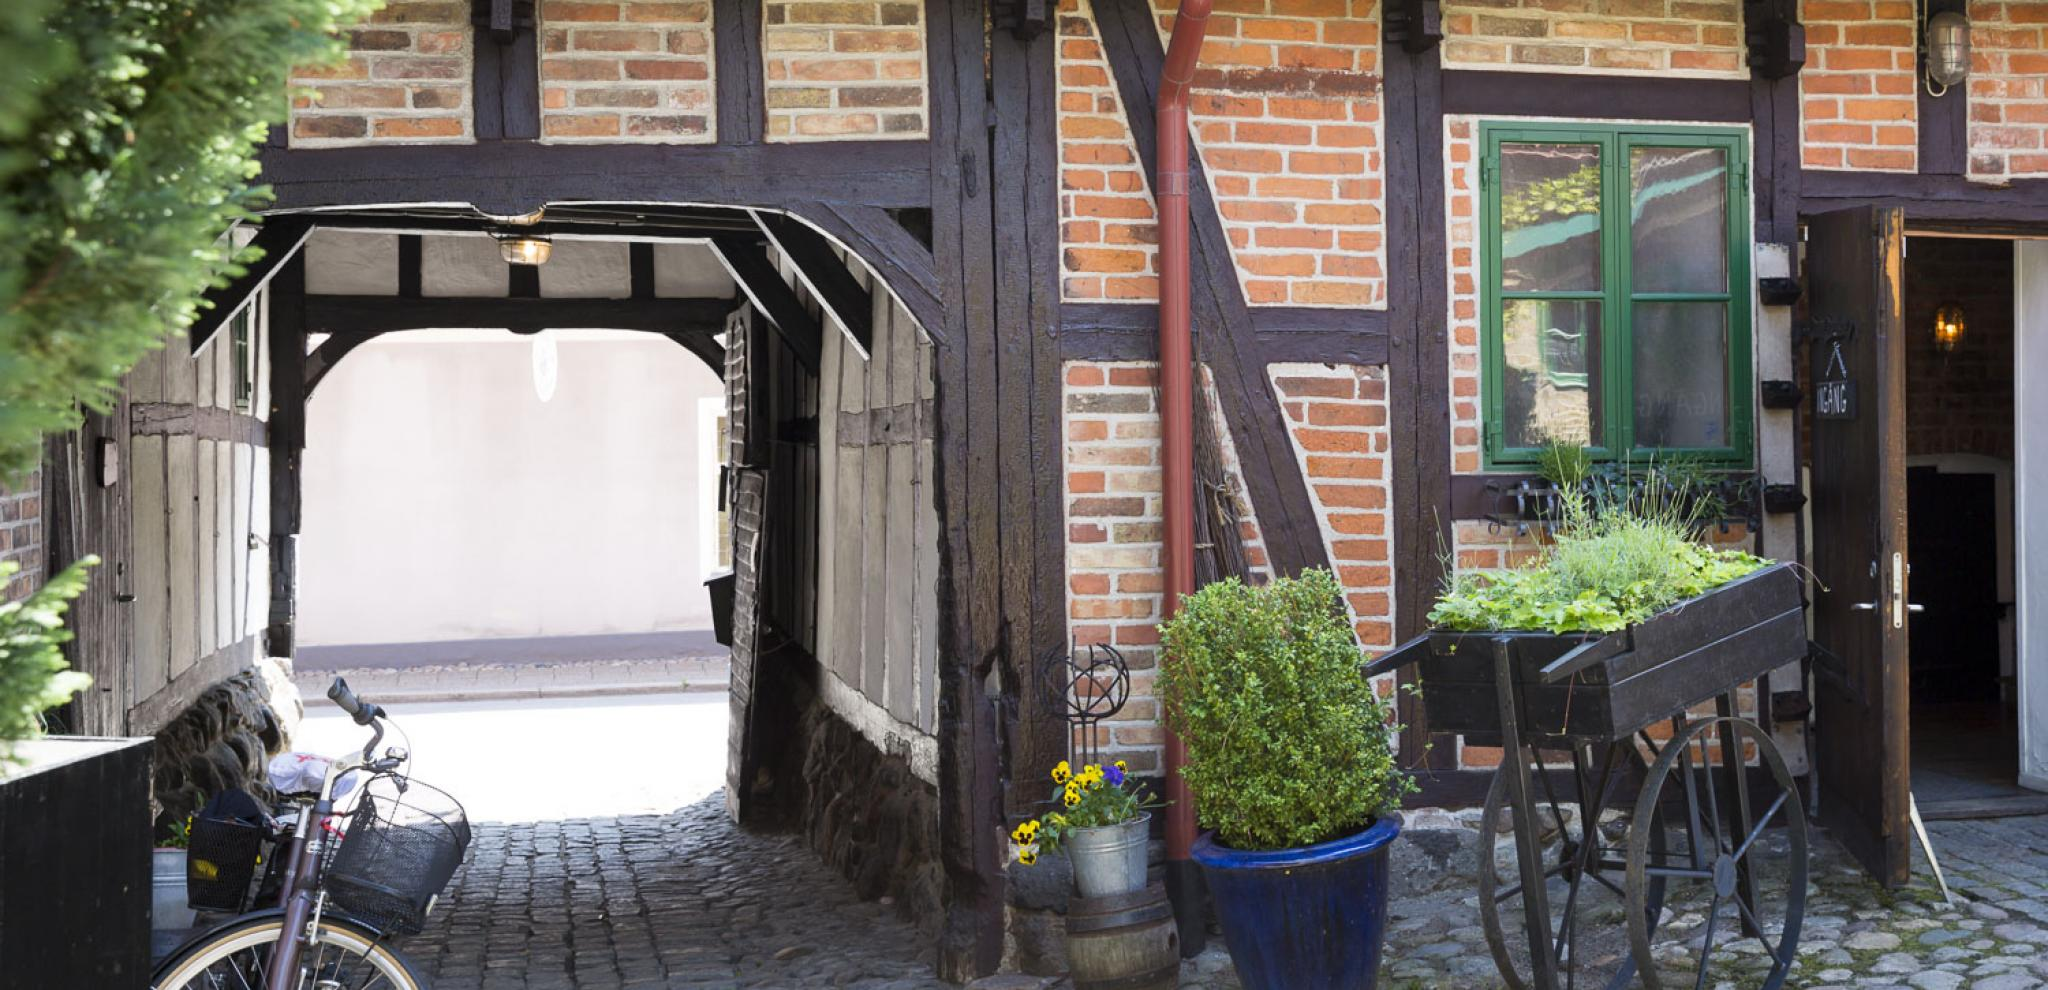 Courtyard in Ystad © carolina romare